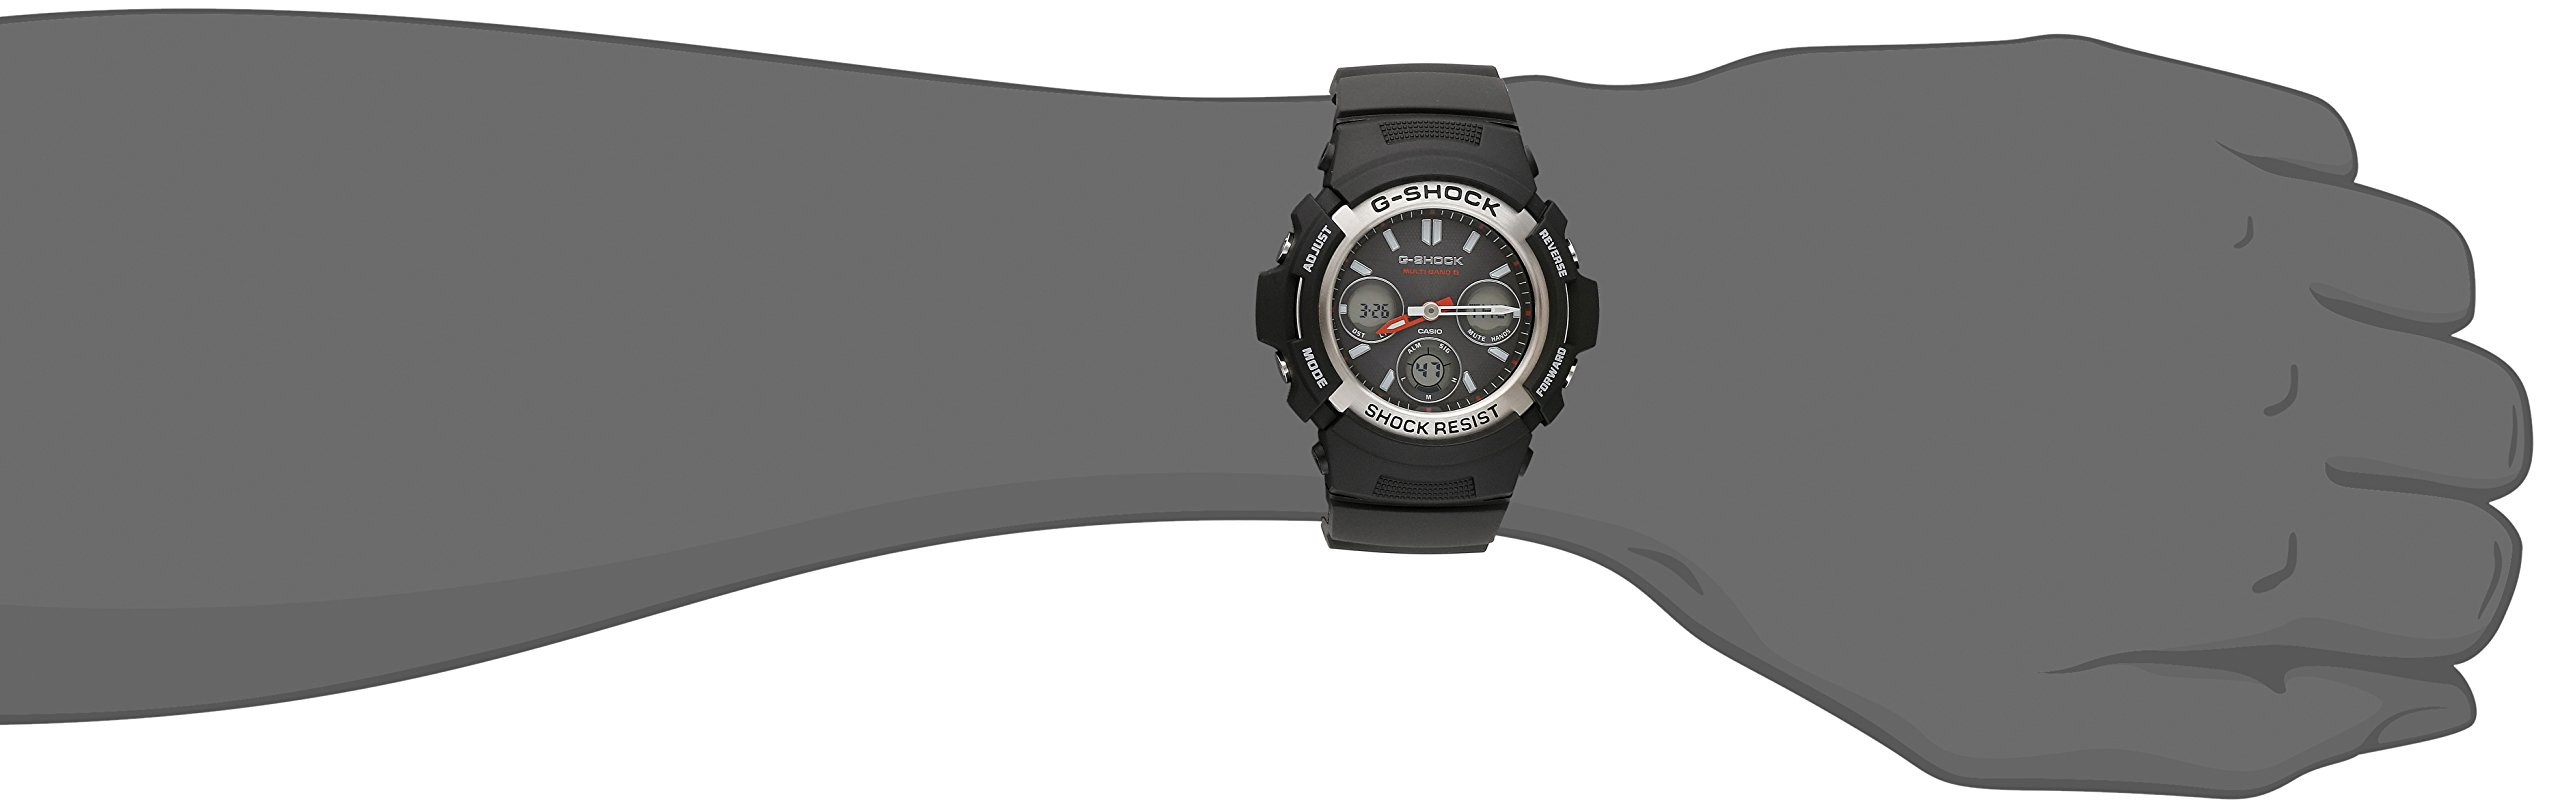 Casio Men's G-Shock AWG-M100-1ACR Tough Solar Atomic Black Resin Sport Watch by Casio (Image #2)